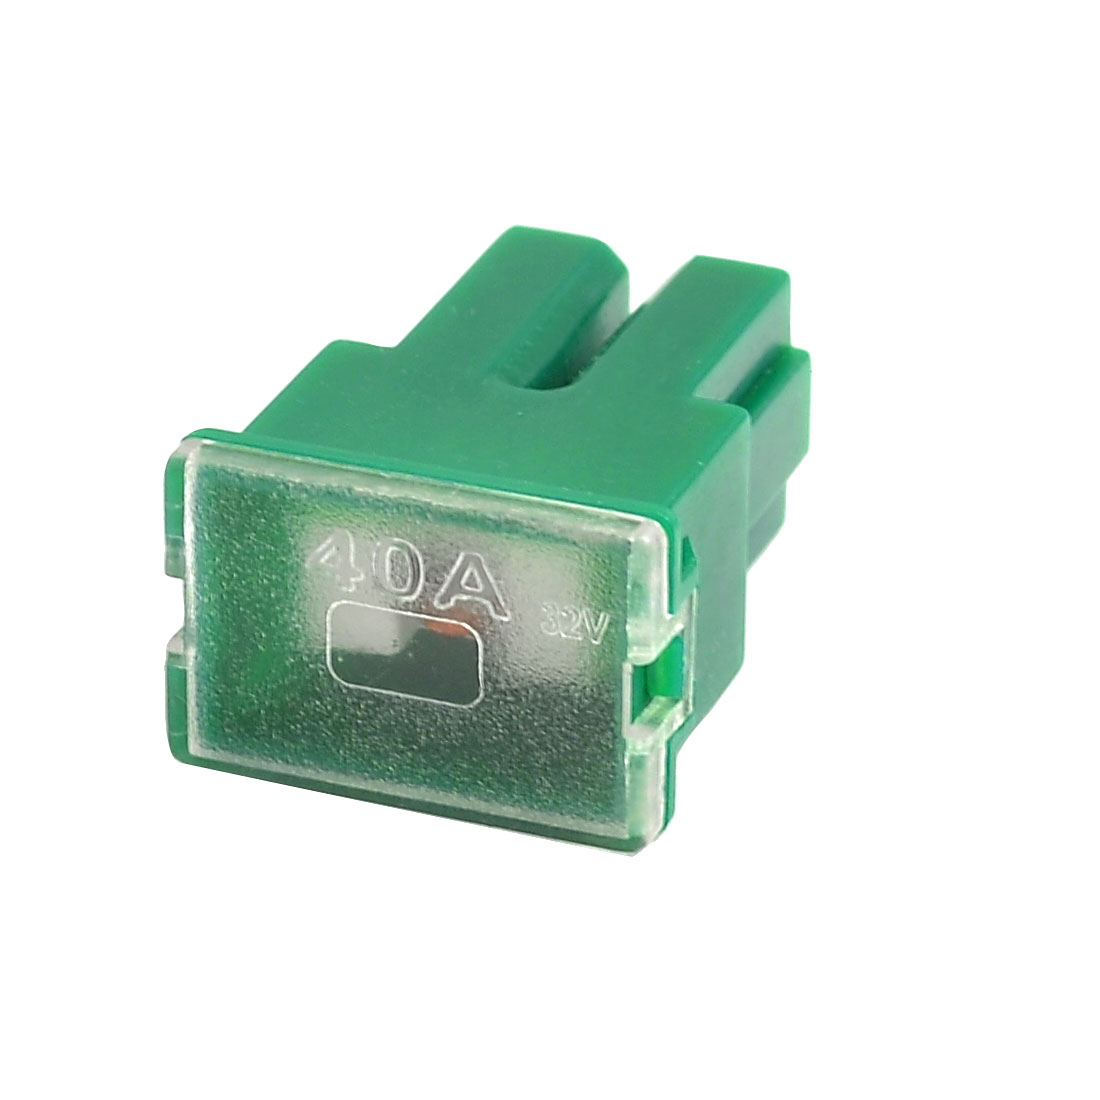 Car Trucks Vehicles Female Adapter in Blades 40A PAL Fuse Green